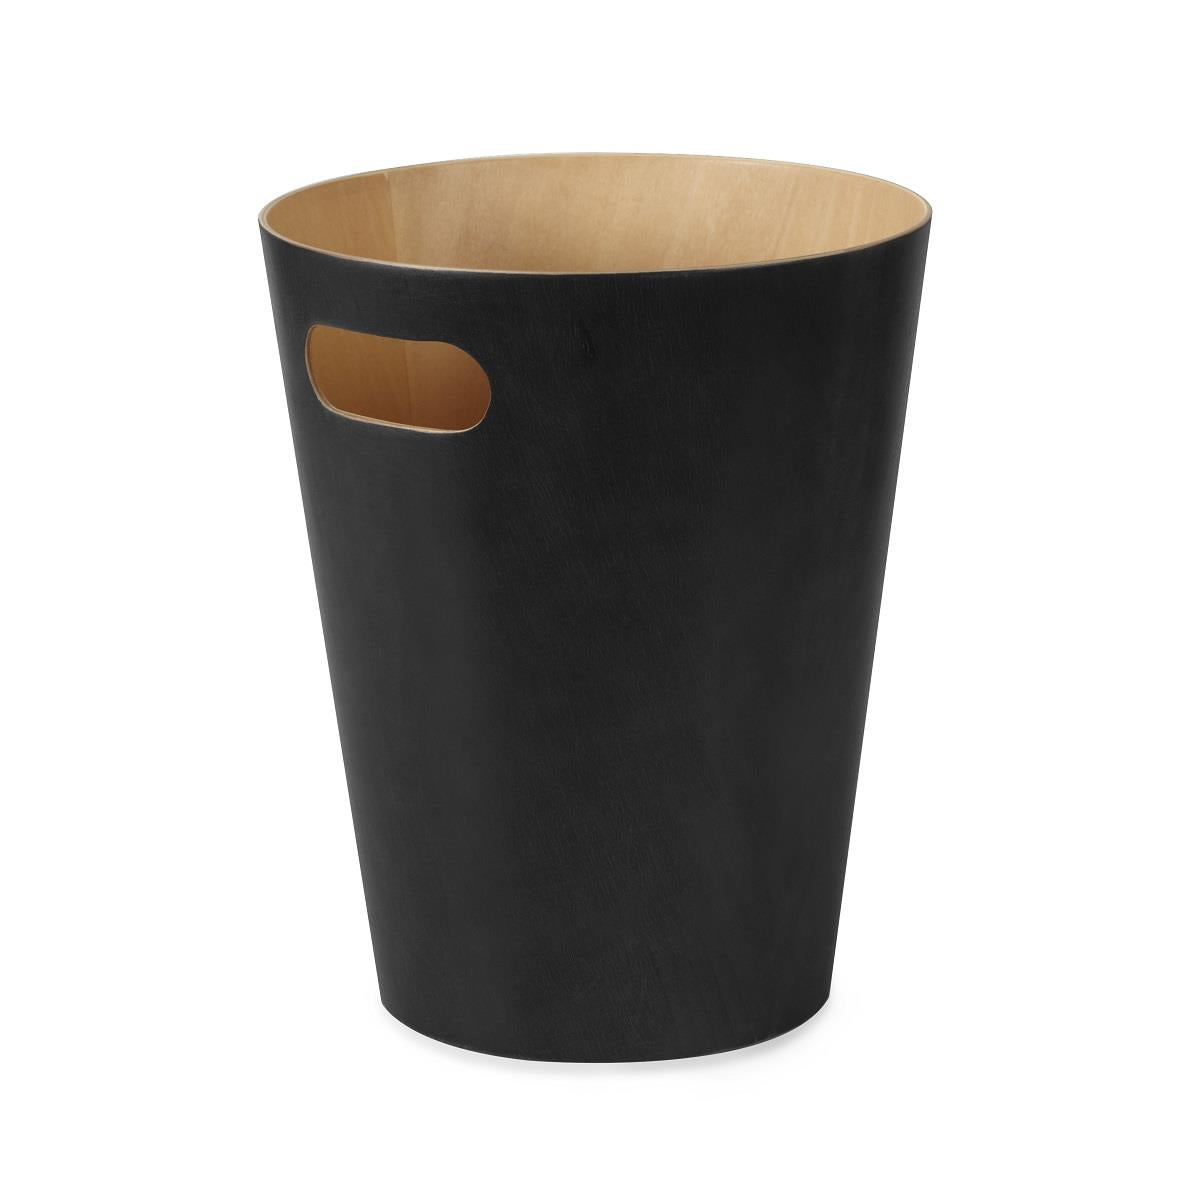 Umbra Woodrow Waste Can Black